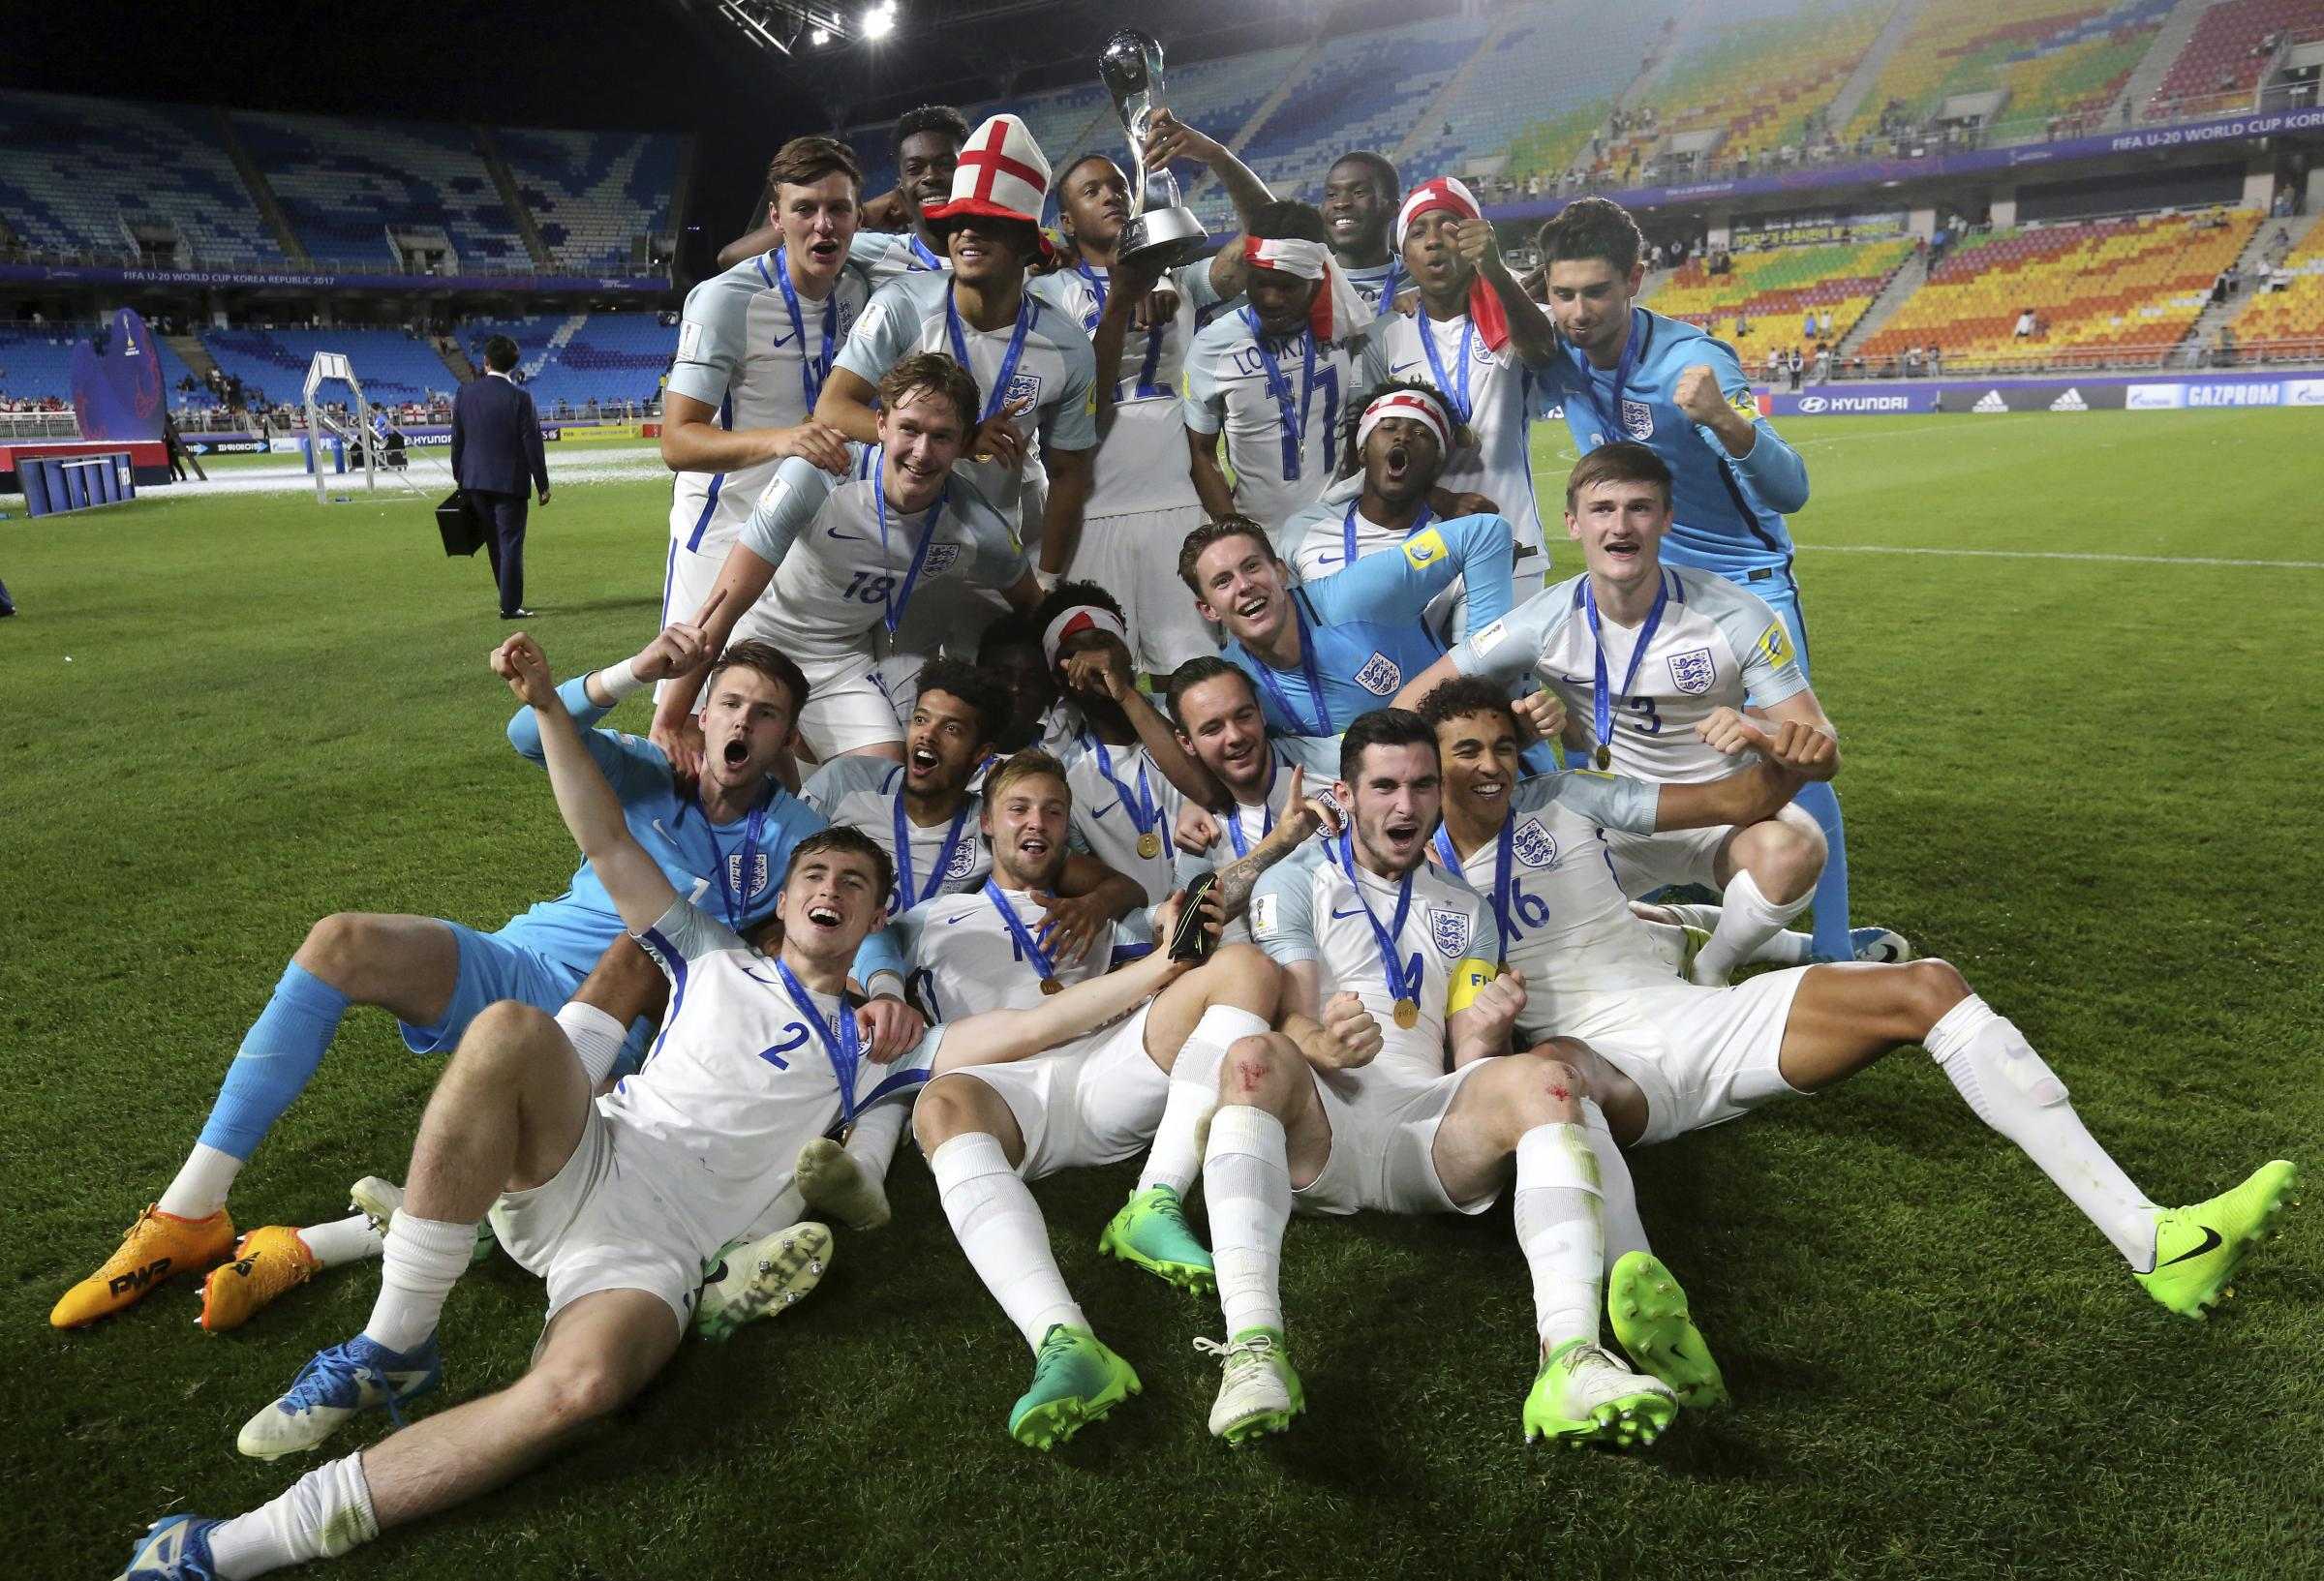 Simpson dodges 'golden generation' talk after World Cup triumph